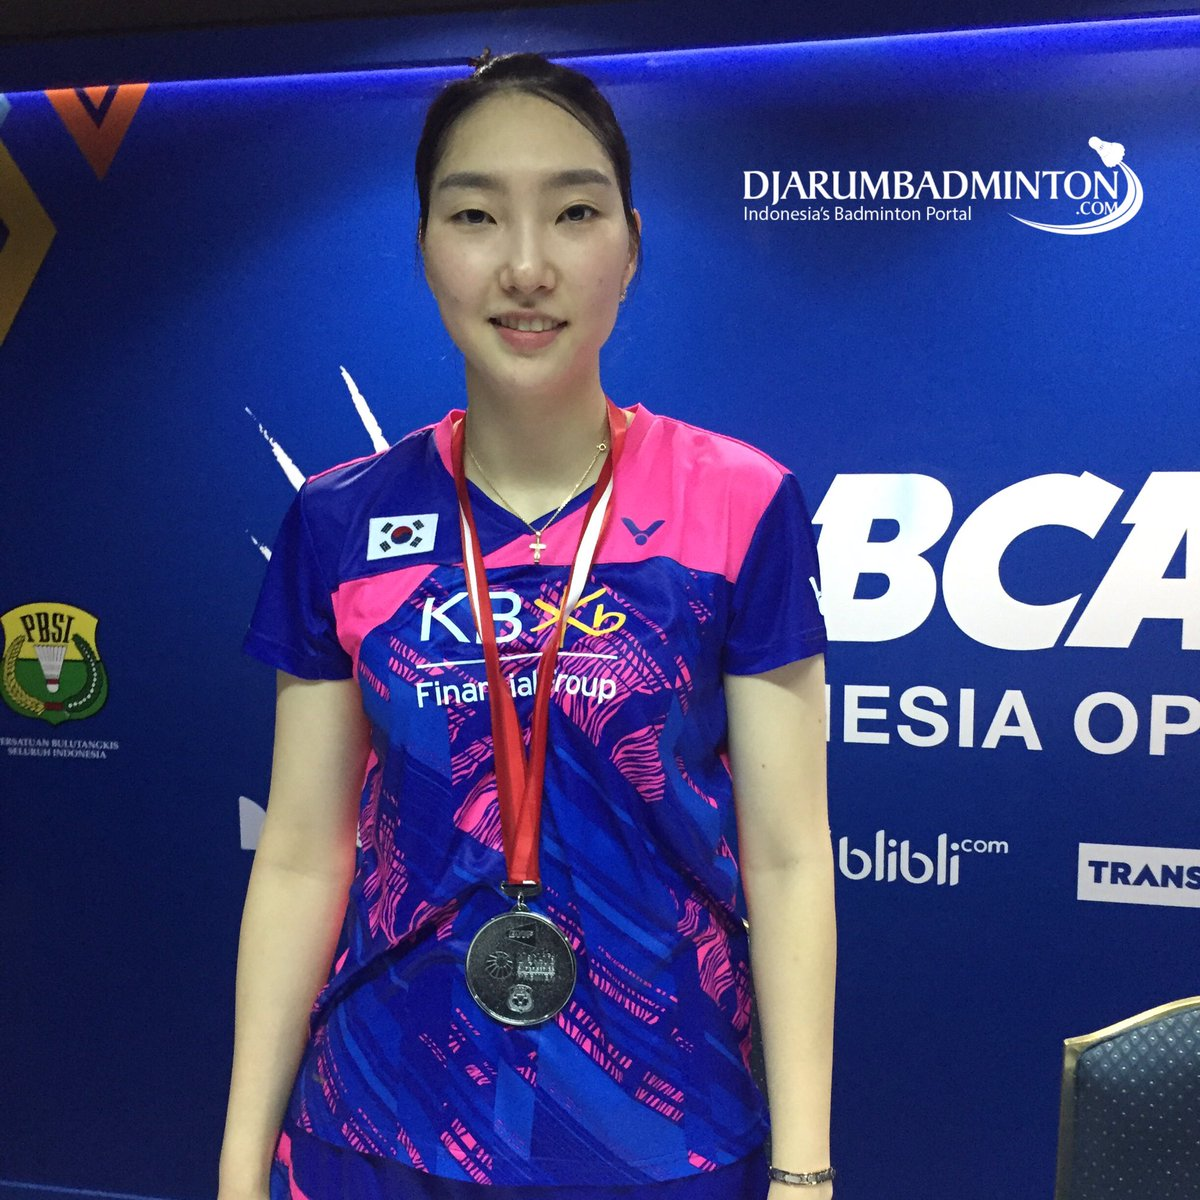 Djarum Badminton Failed To Win the Title Sung Ji Hyun s Low